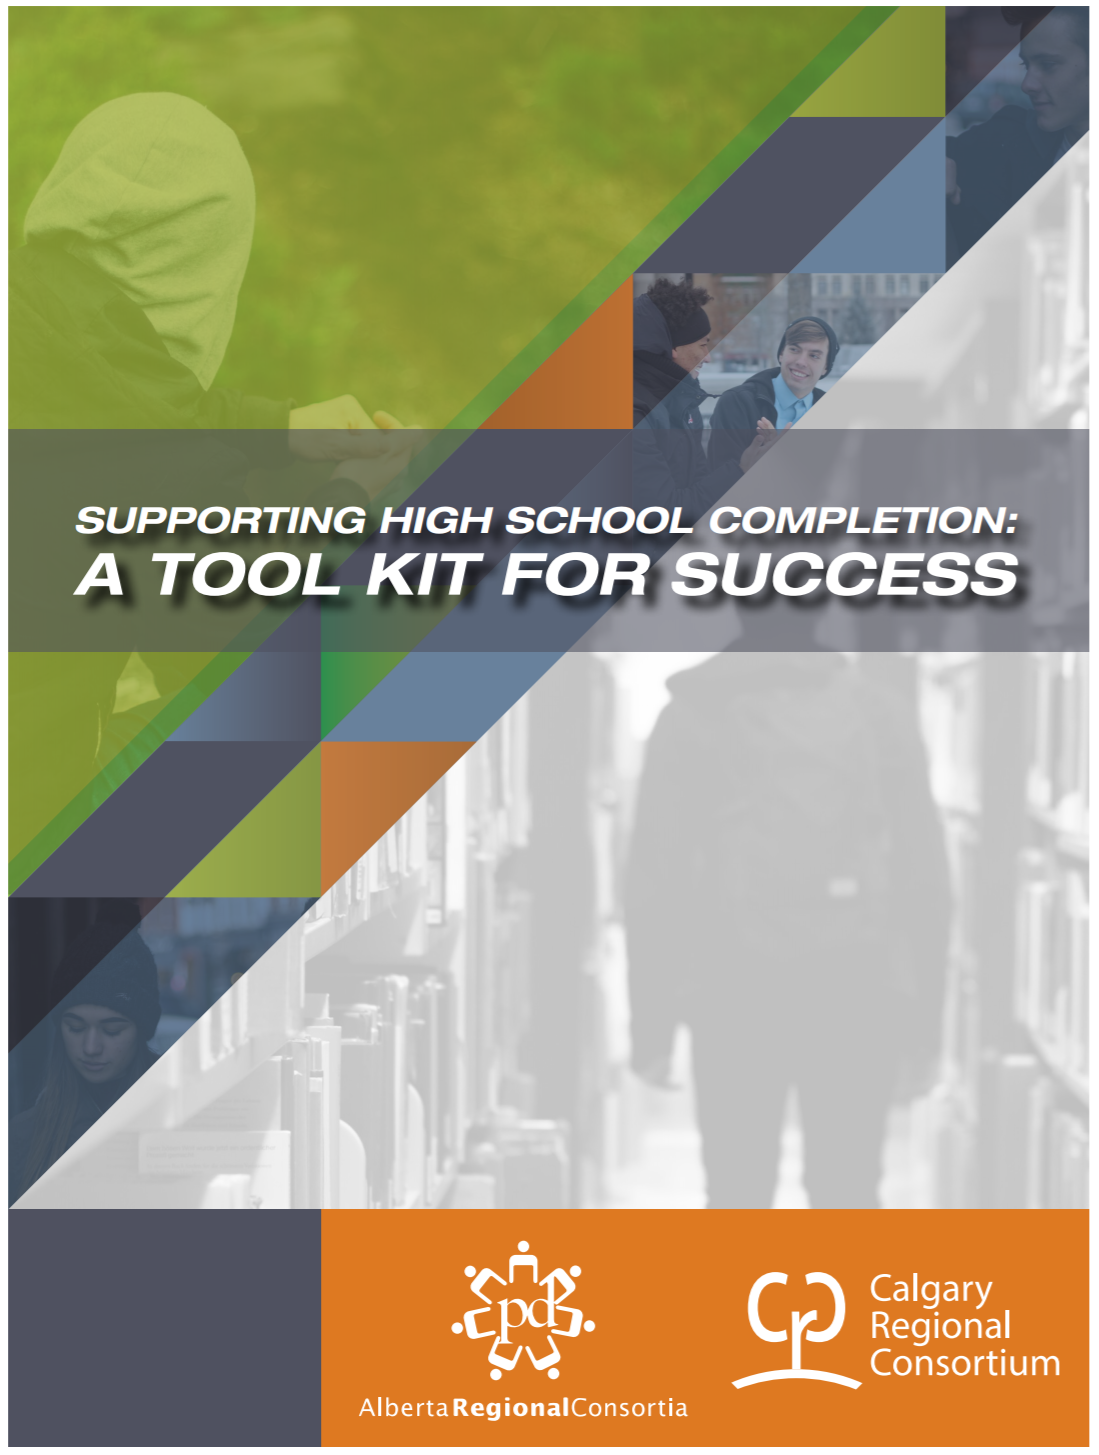 Supporting High School Completion: A Tool Kit for Success